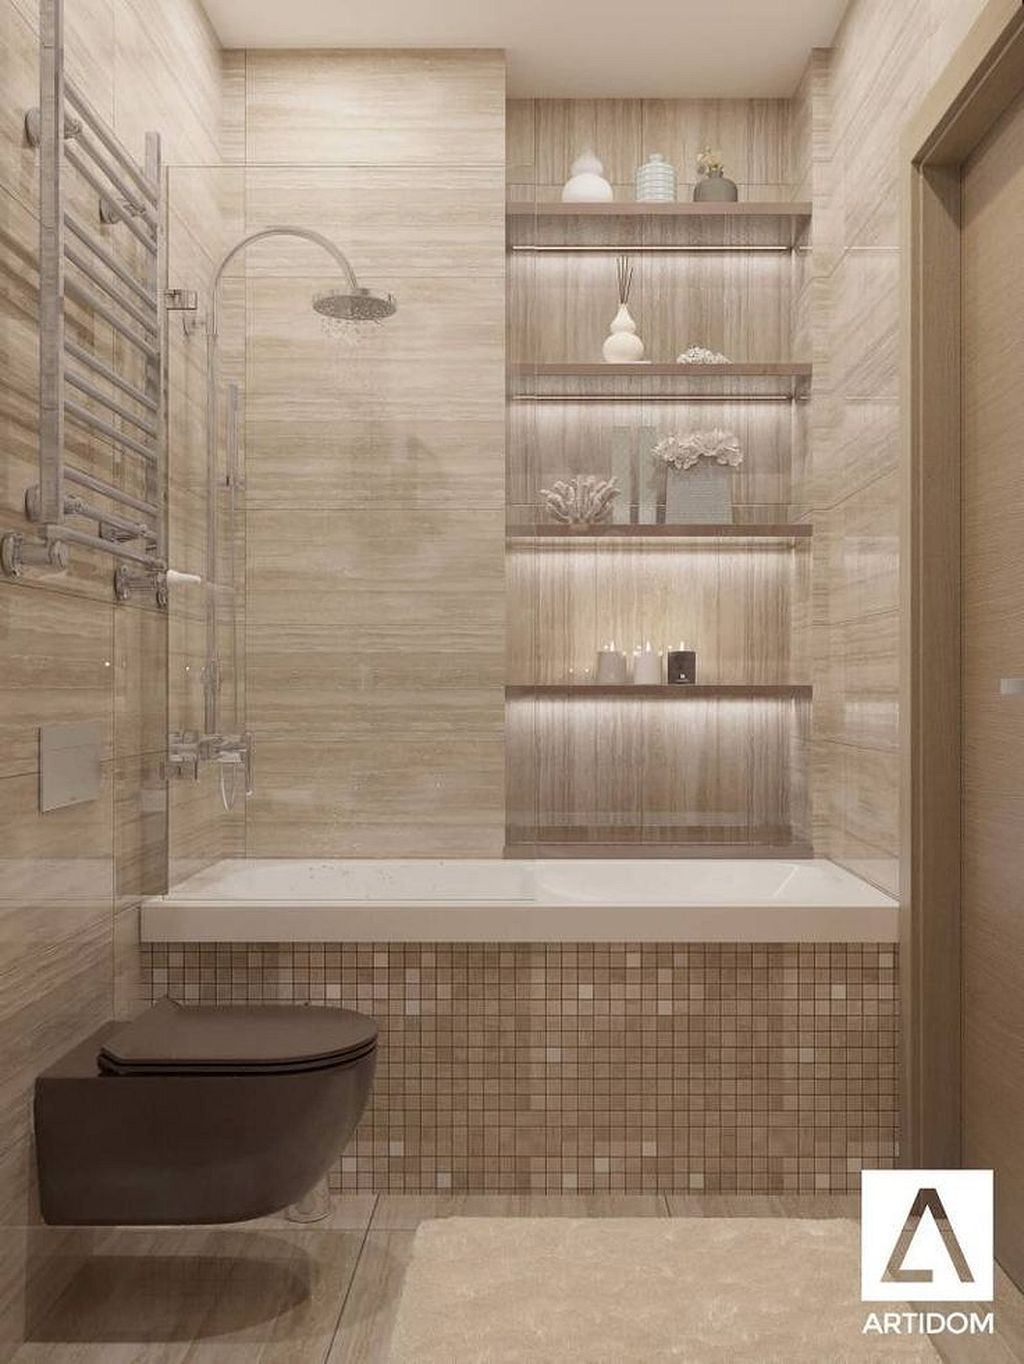 Best Tub Shower Combo Ideas Bathroom Tub Shower Combo Bathroom Tub Shower Bathroom Design Small